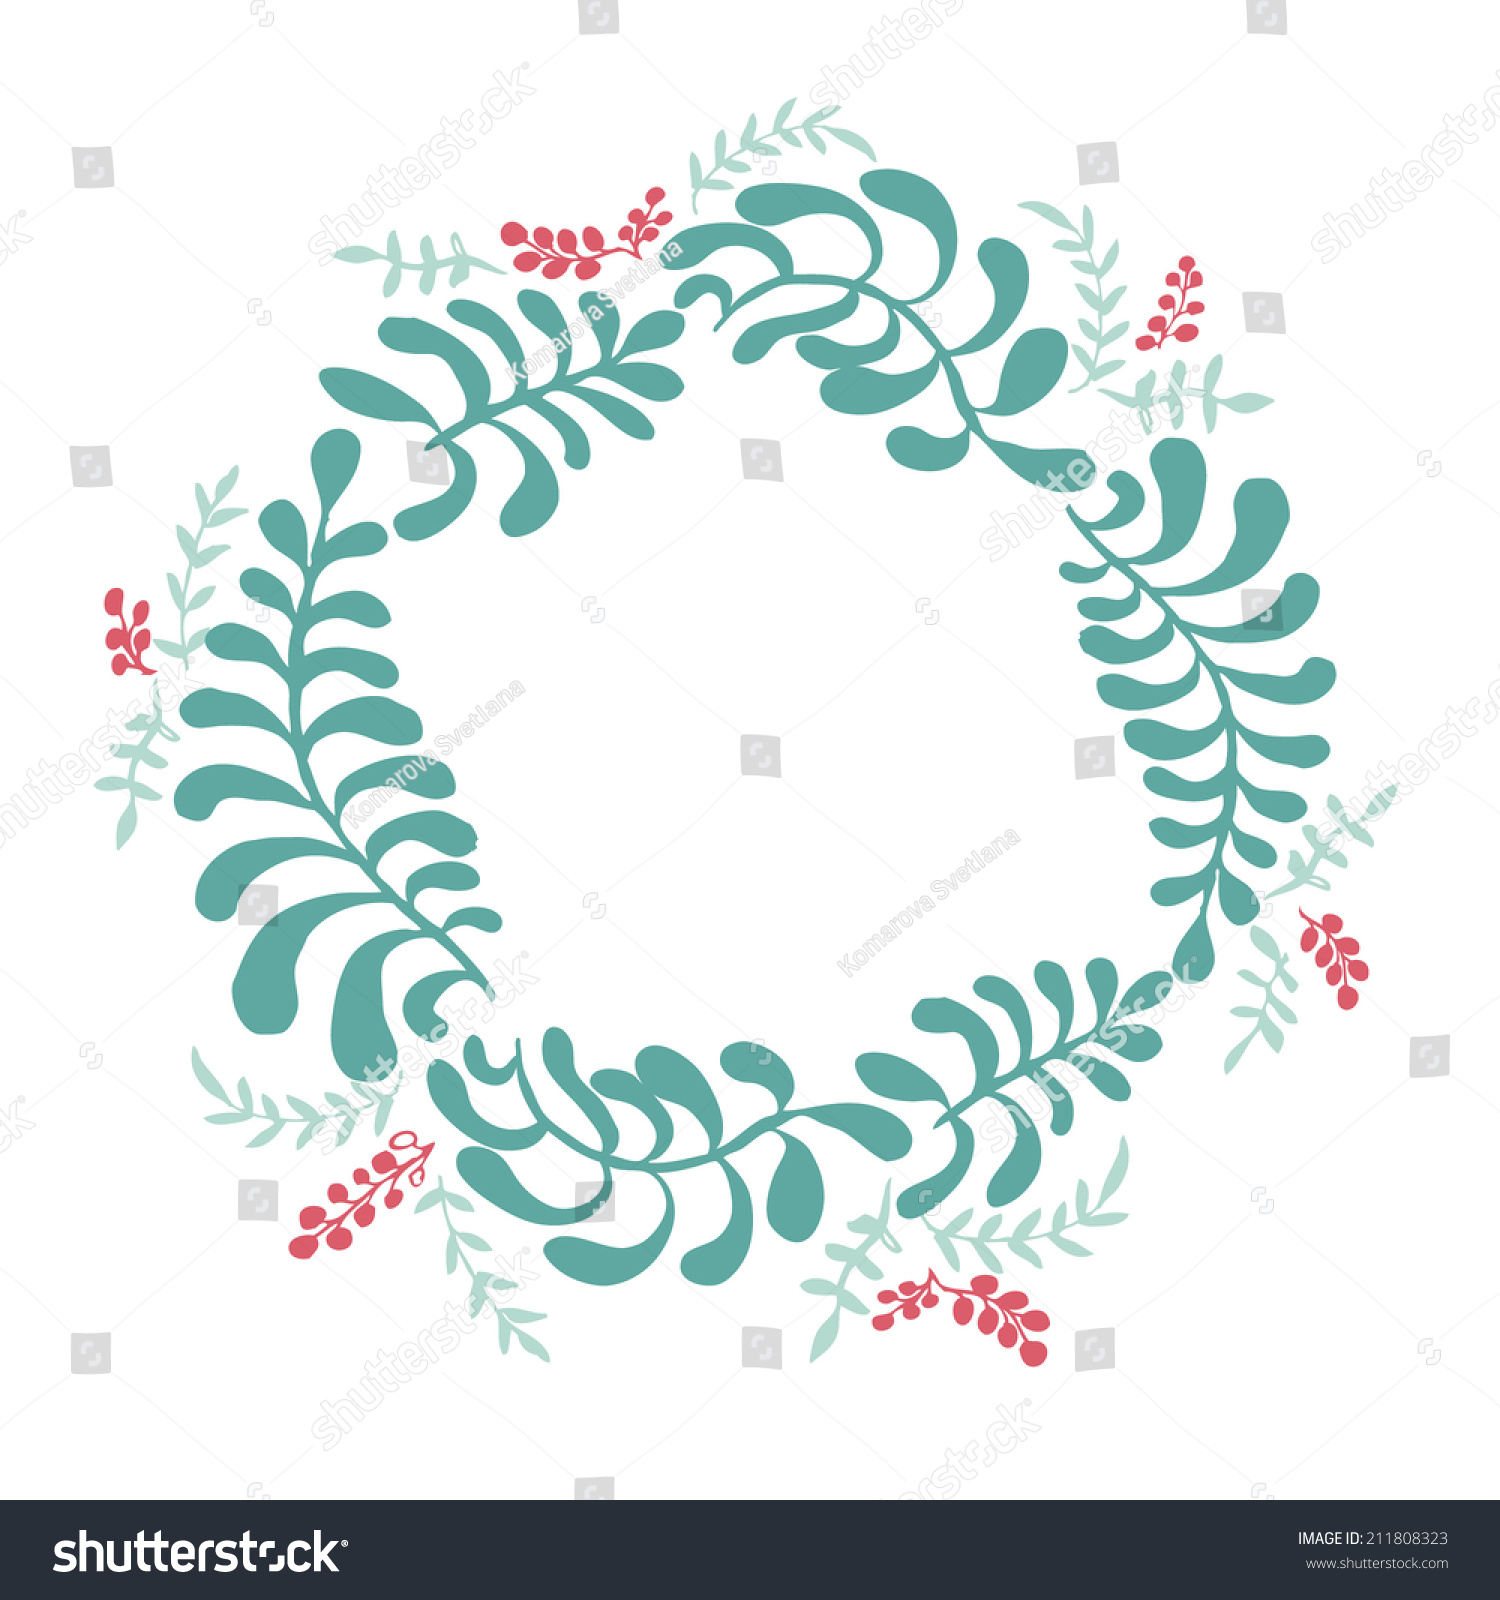 Of Wreaths Vector Floral Frames Cute Collection Wreaths Stock Vector